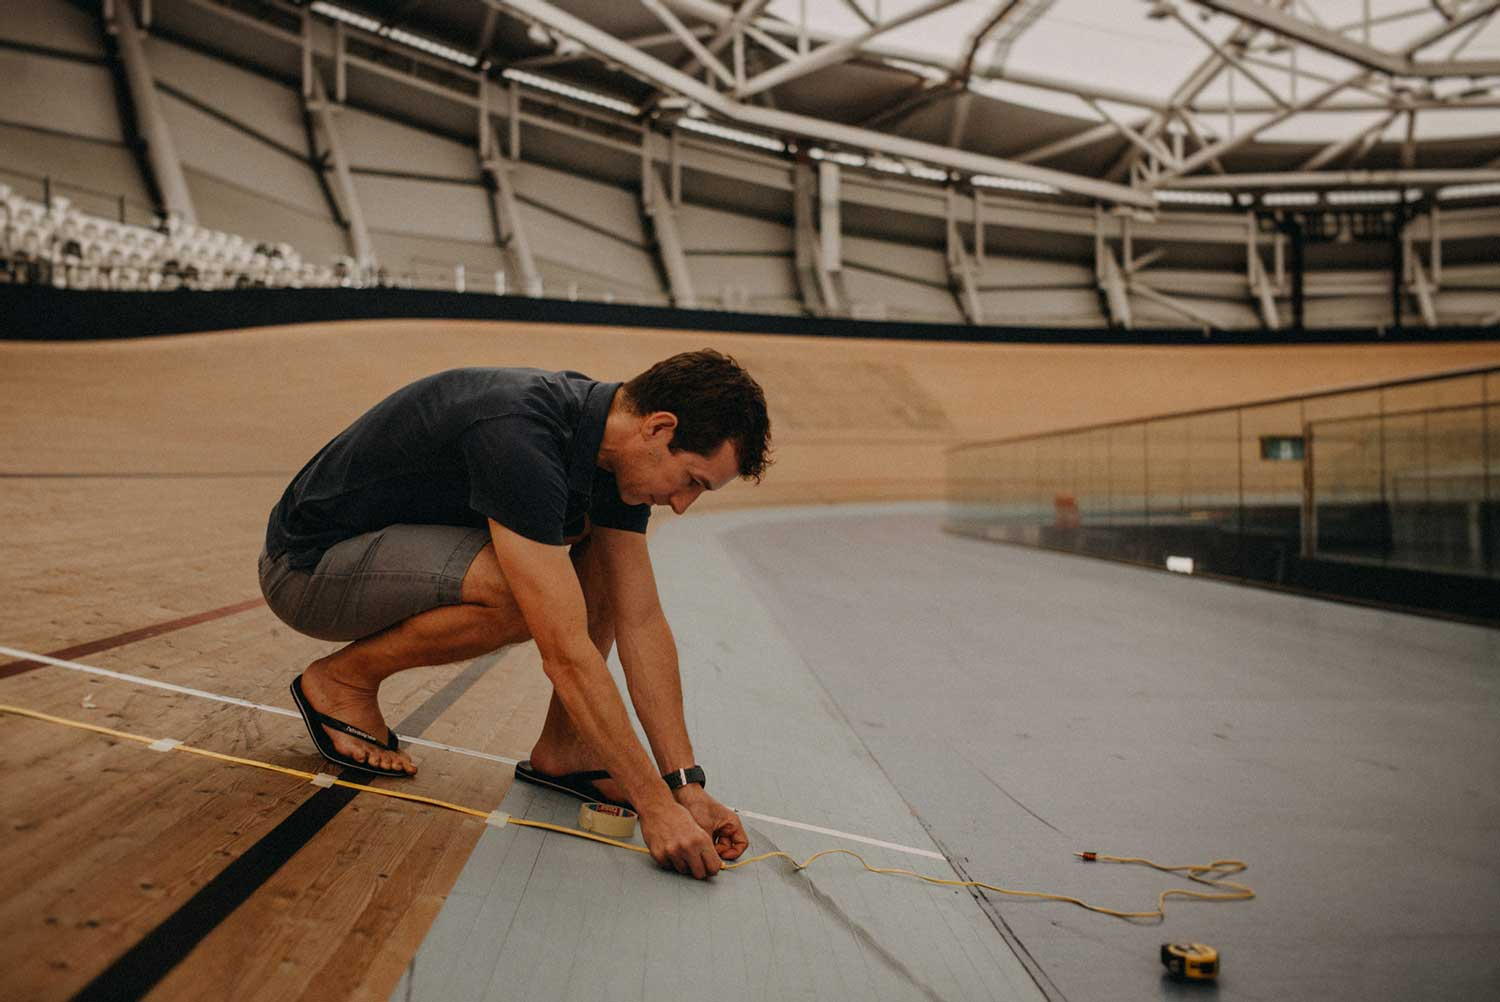 Team Japan Cycling Biomechanist prepares track for testing during cycling training session at velodrome